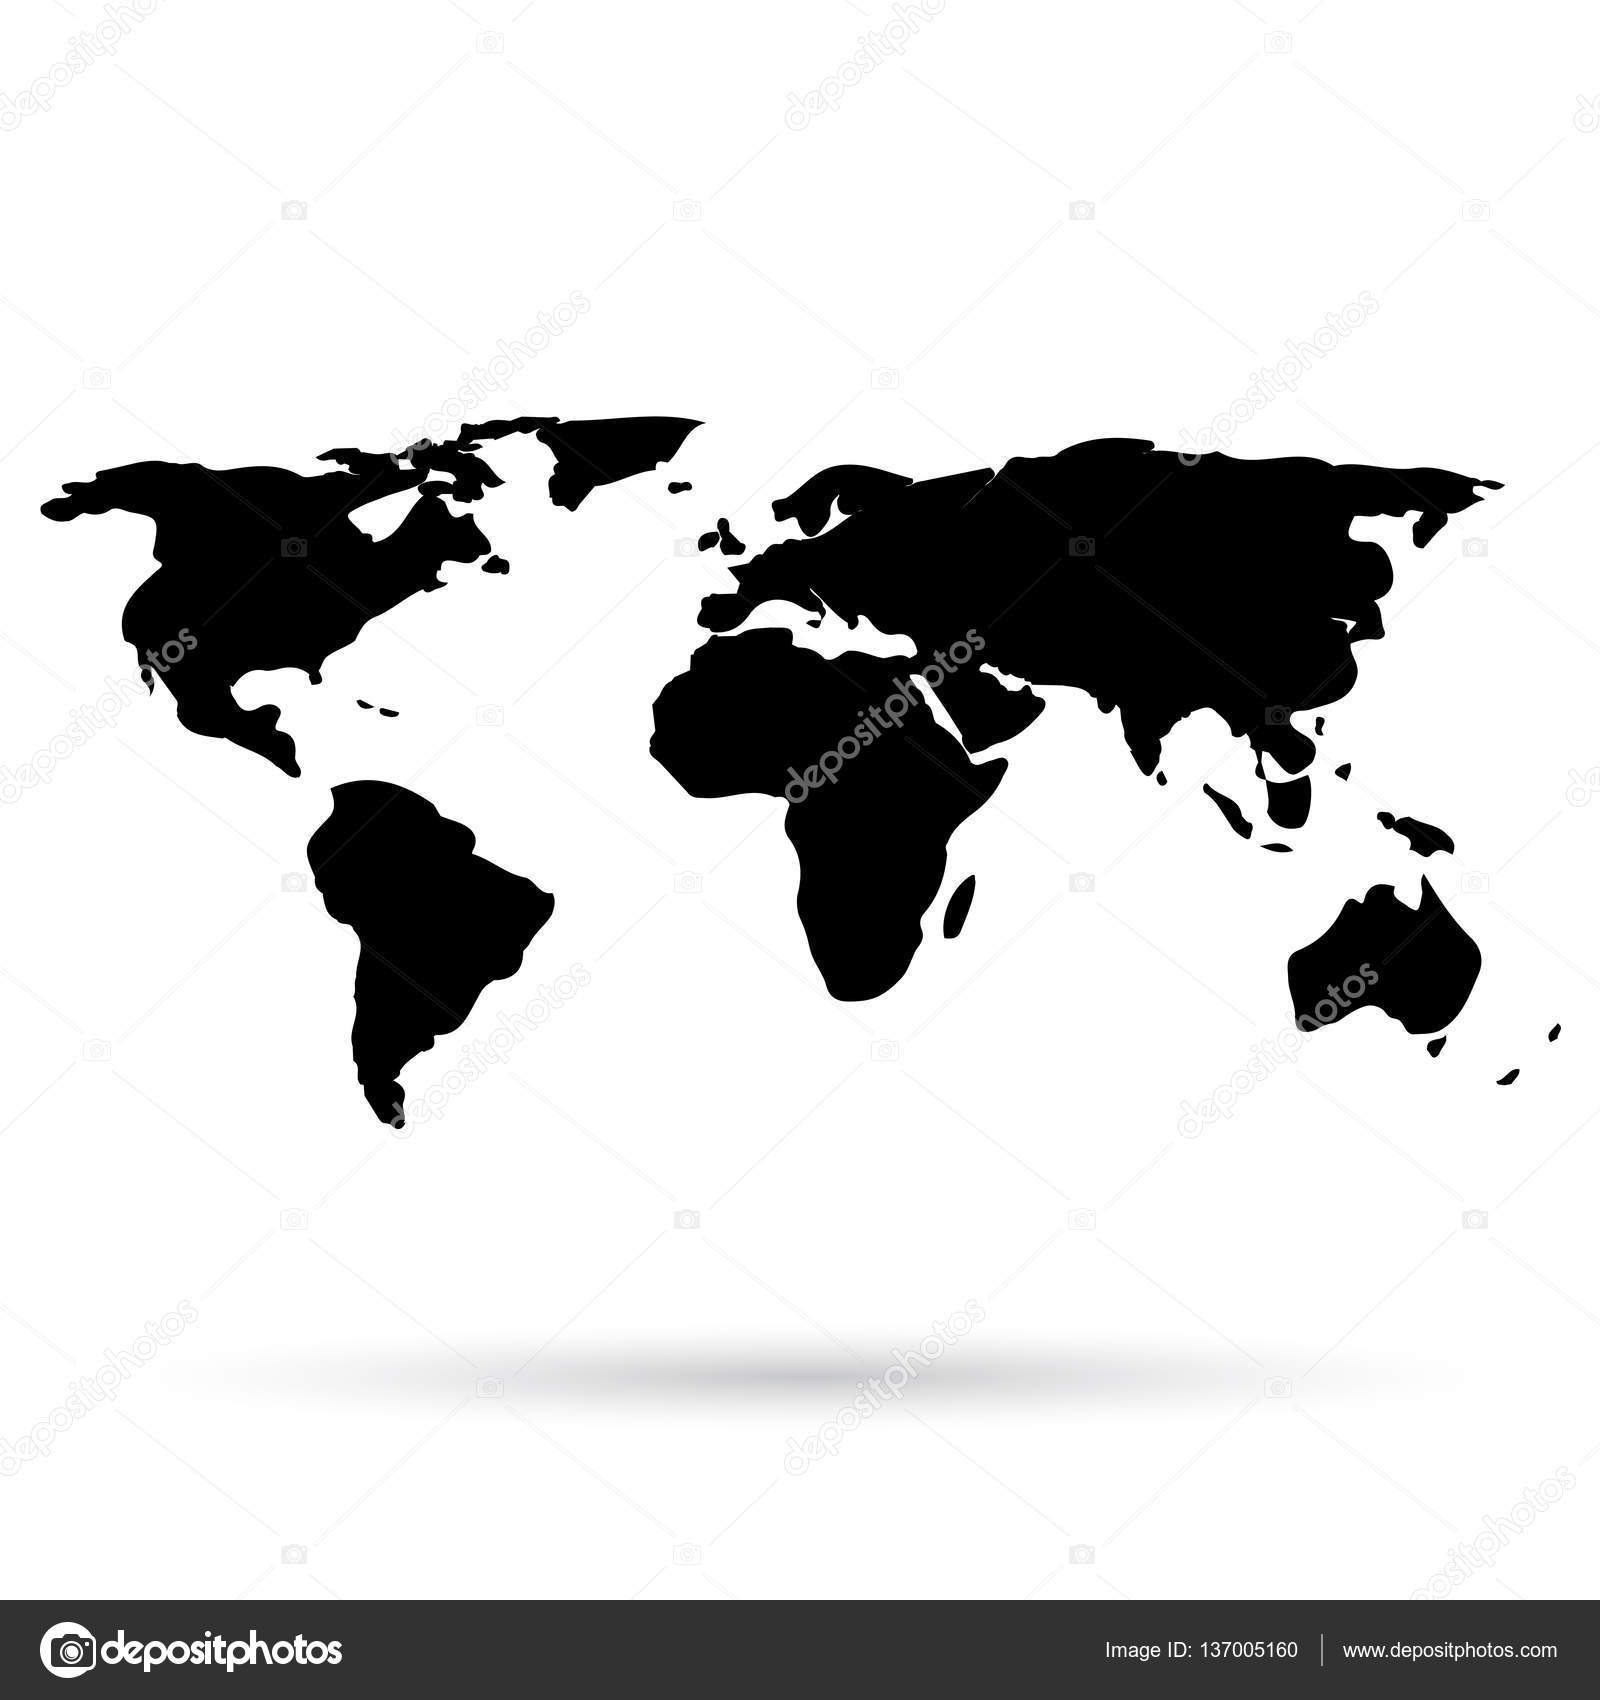 World map black icon on white background stock vector world map black icon on white background stock vector gumiabroncs Image collections